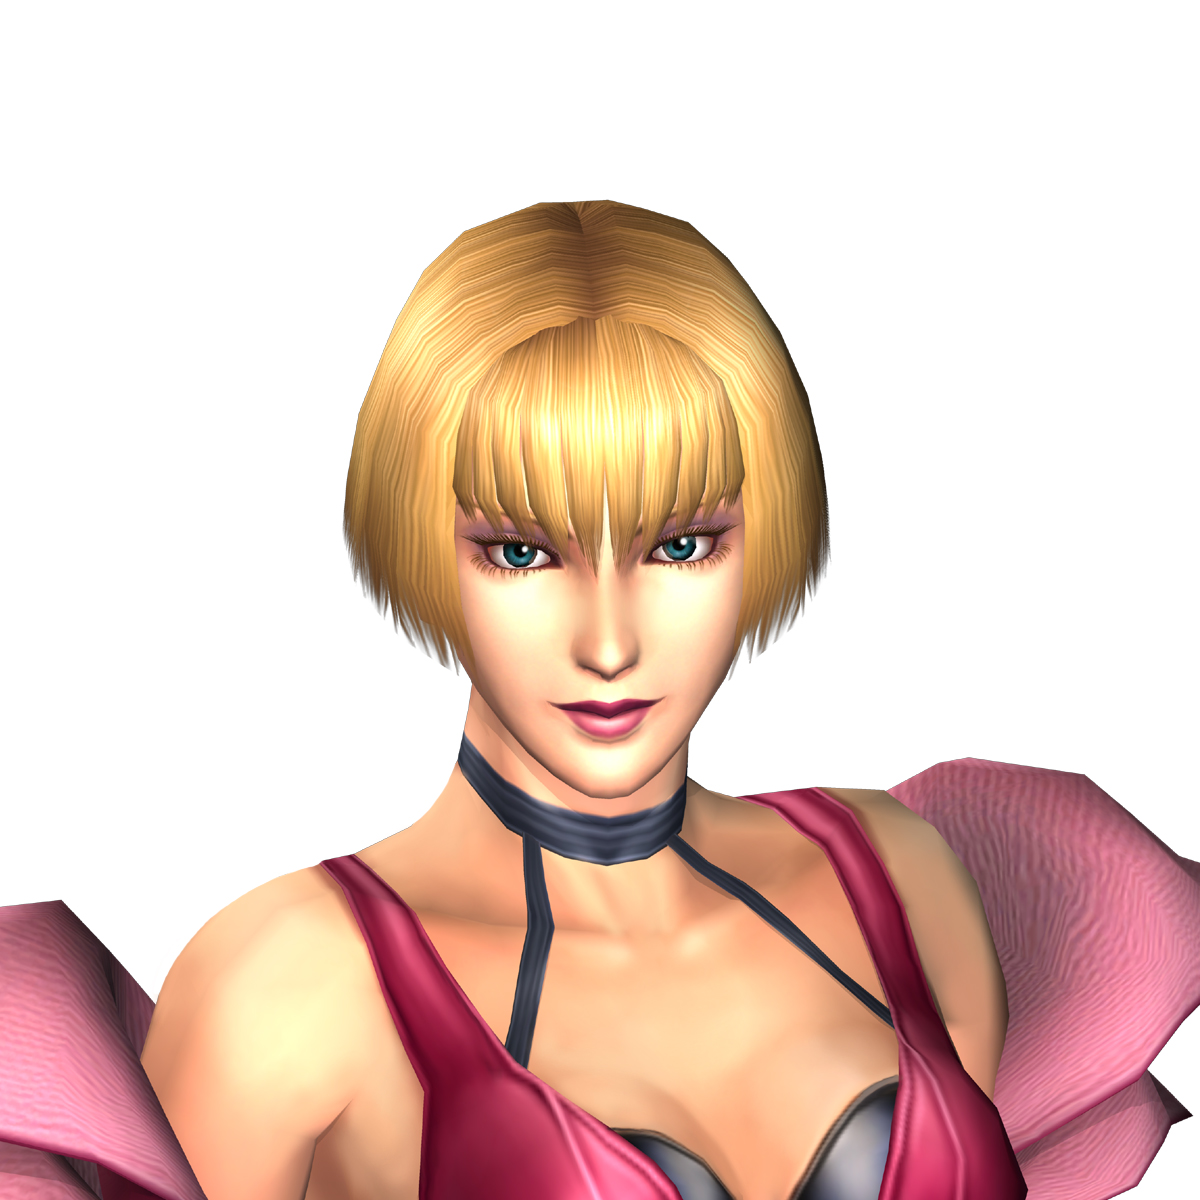 Bloody roar jenny fucked porn video download hentia download